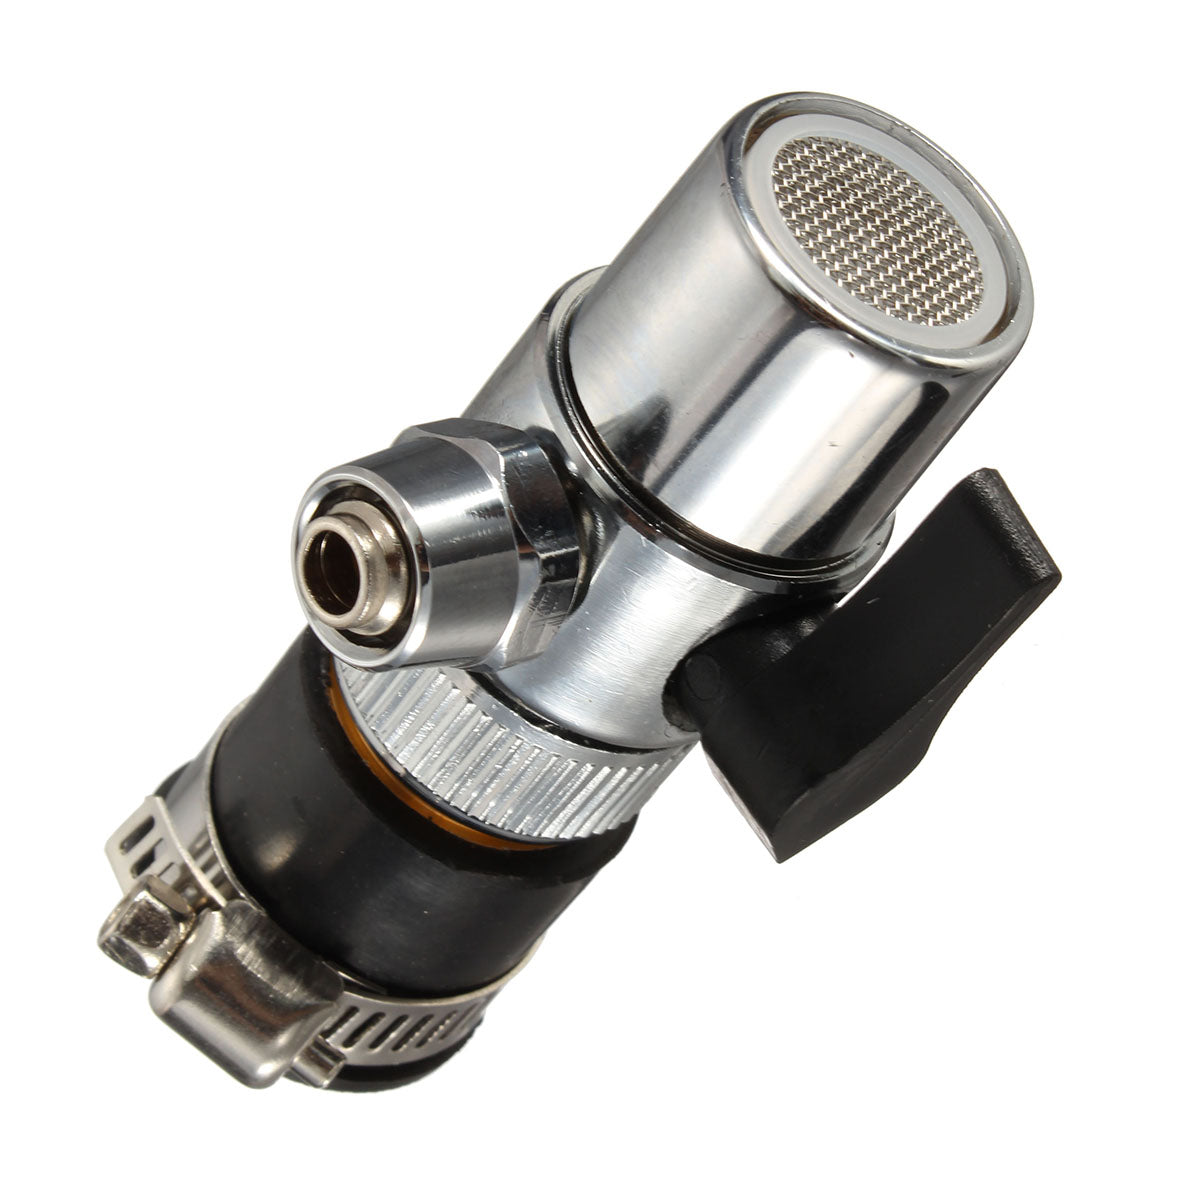 Water Saving Bubbler Faucet Kitchen Bathroom Aerator Rotating Nozzle Diverter Filter Valve Connector